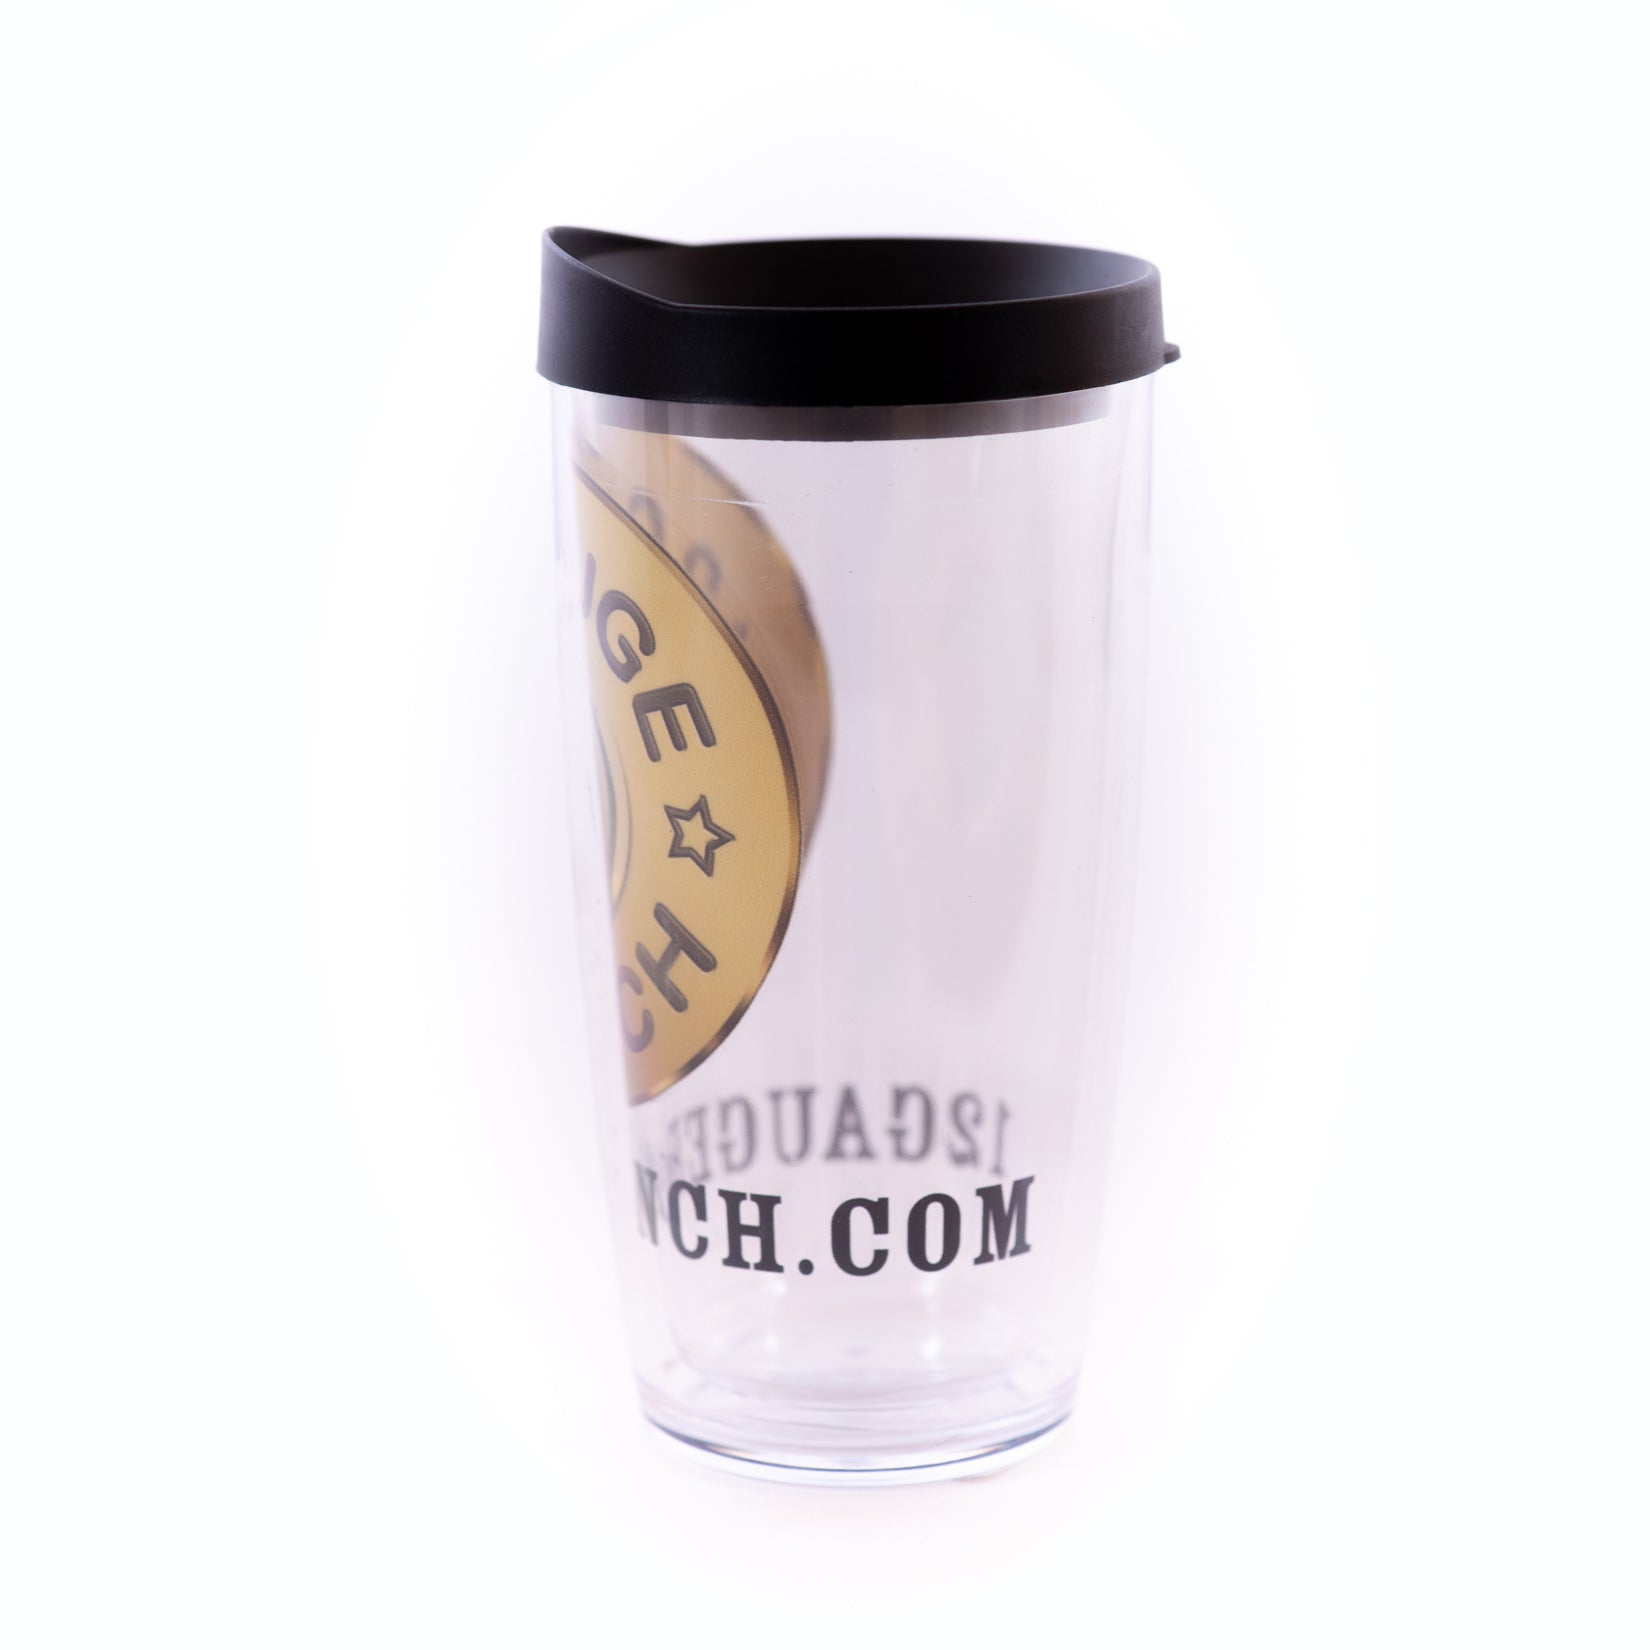 12 Gauge Bullet 16oz Insulated Covo Cup, Accessories, 12 Gauge Ranch, 12 Gauge Ranch 12 Gauge Ranch